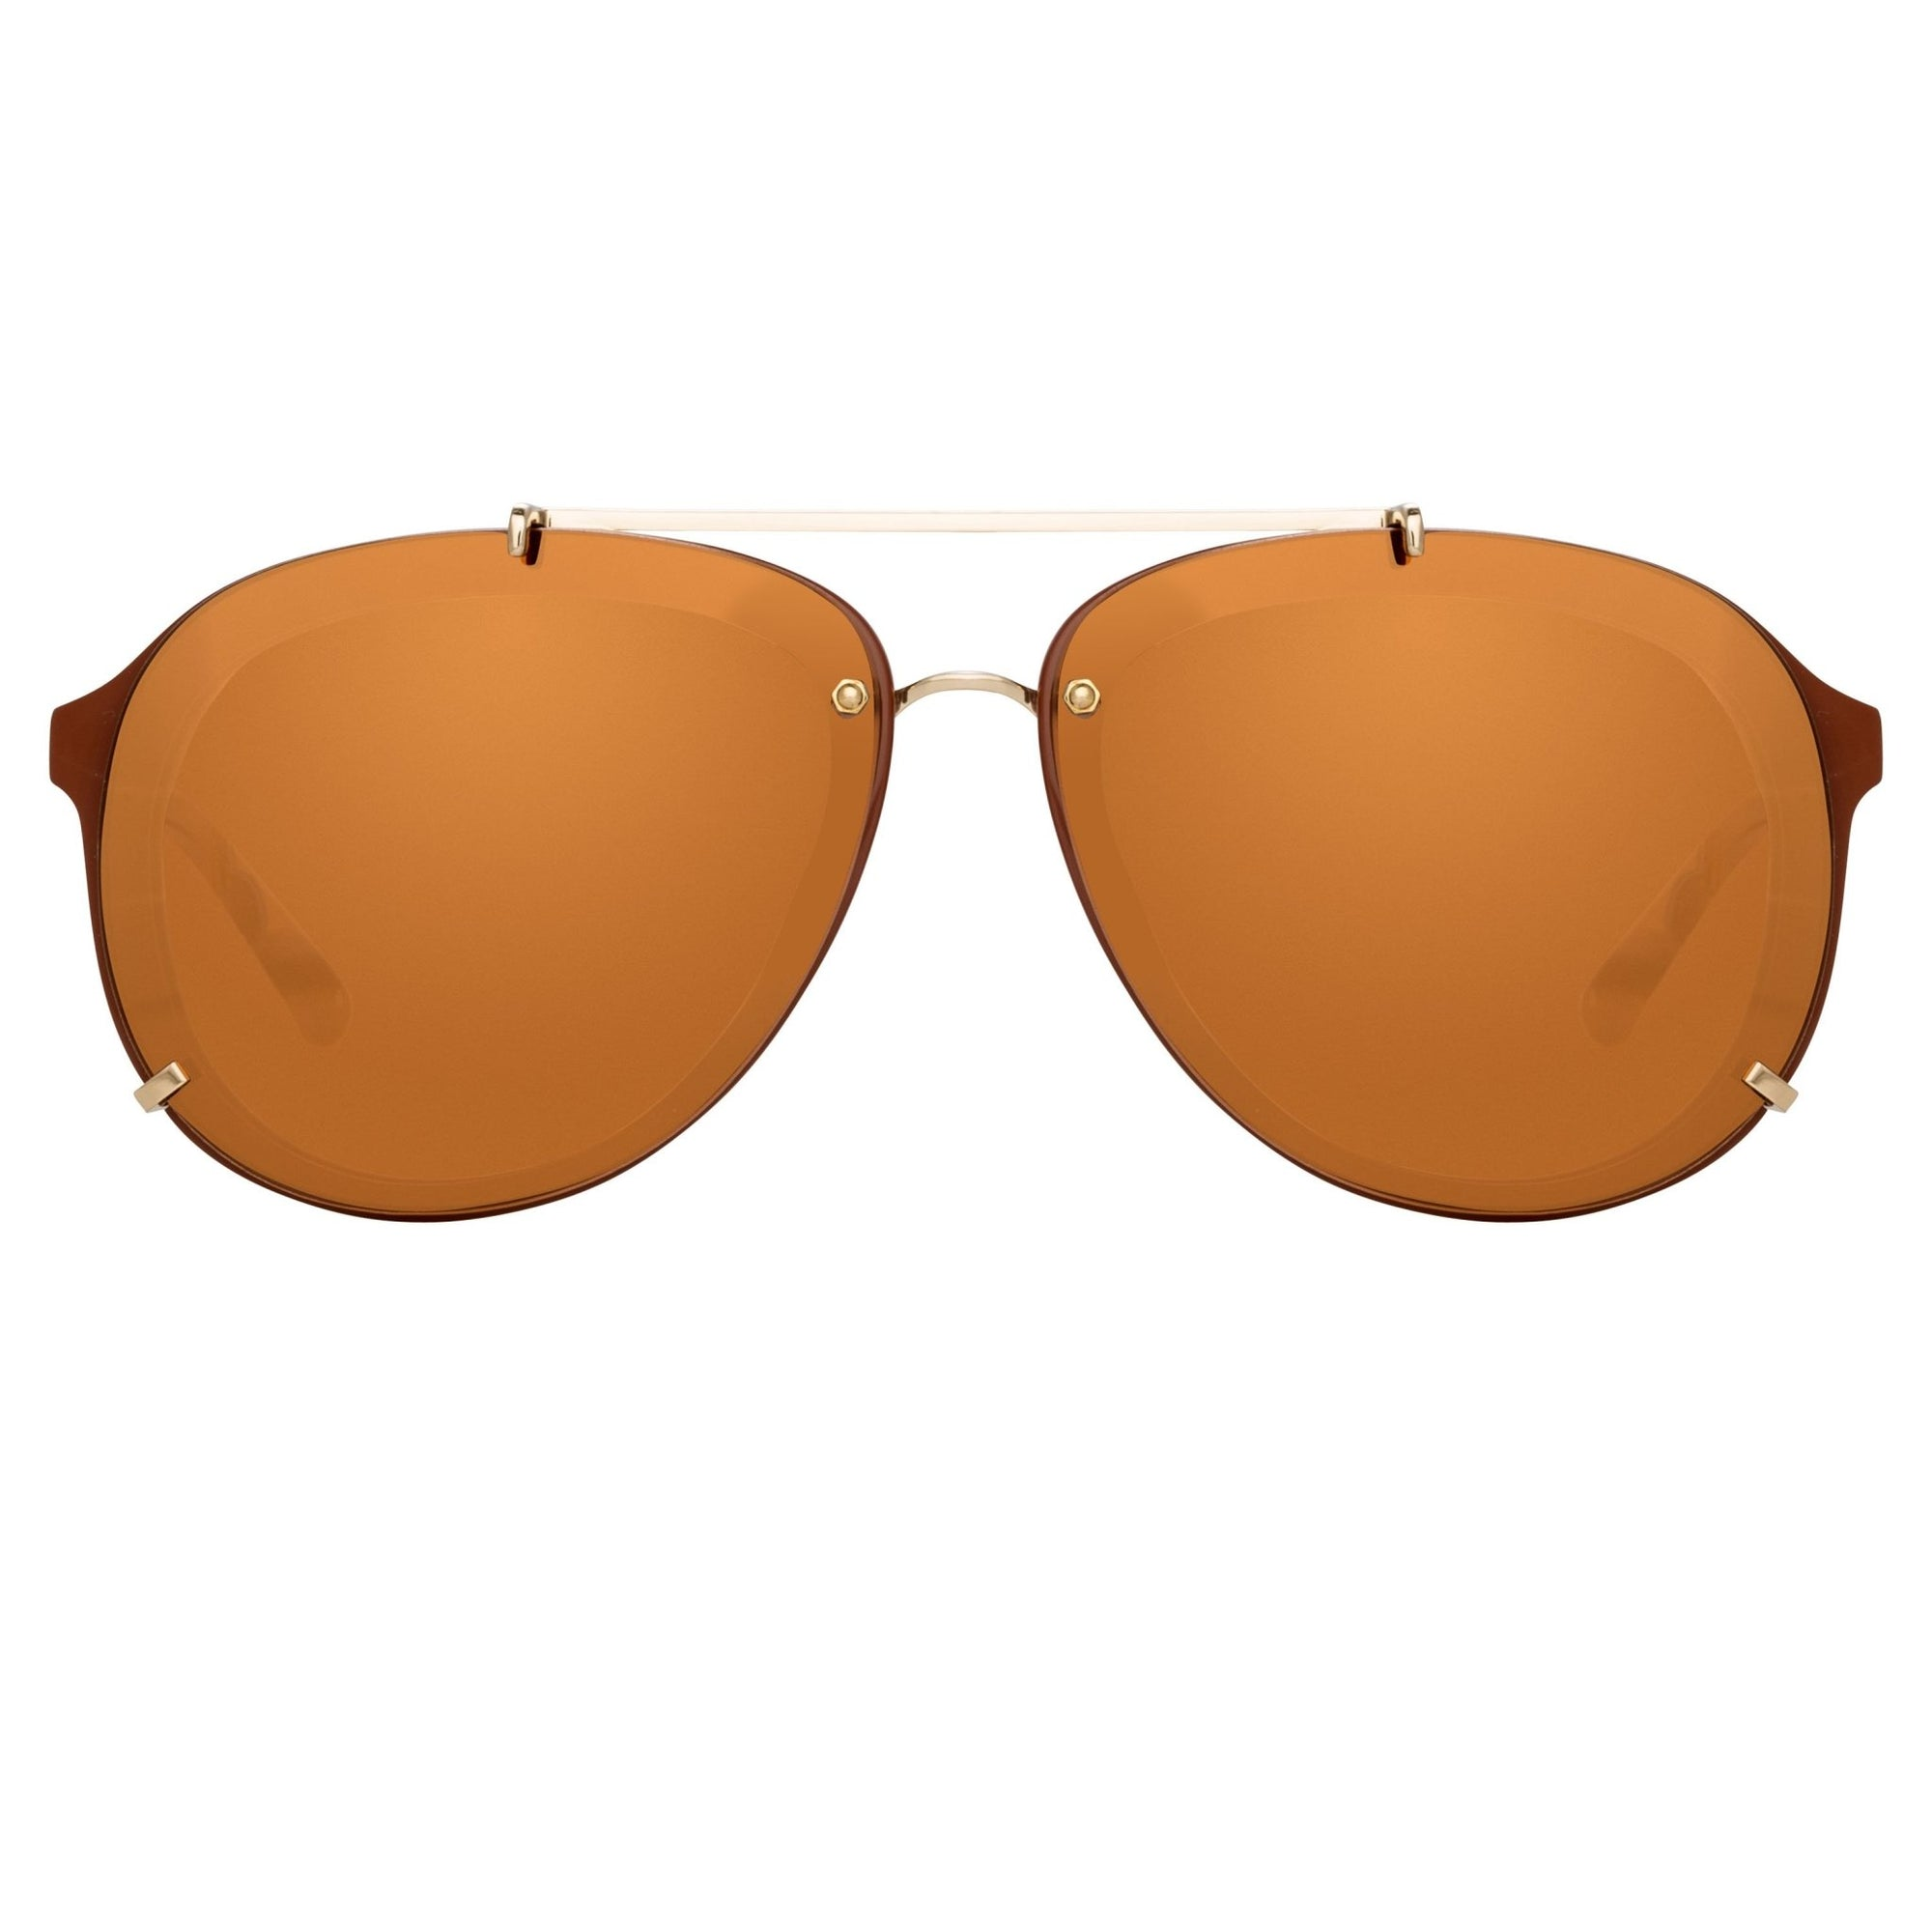 Phillip Lim Sunglasses Unisex Rust and Light Gold Aviator with Rust Mirror Lenses Category 3 - PL162C13SUN - Watches & Crystals